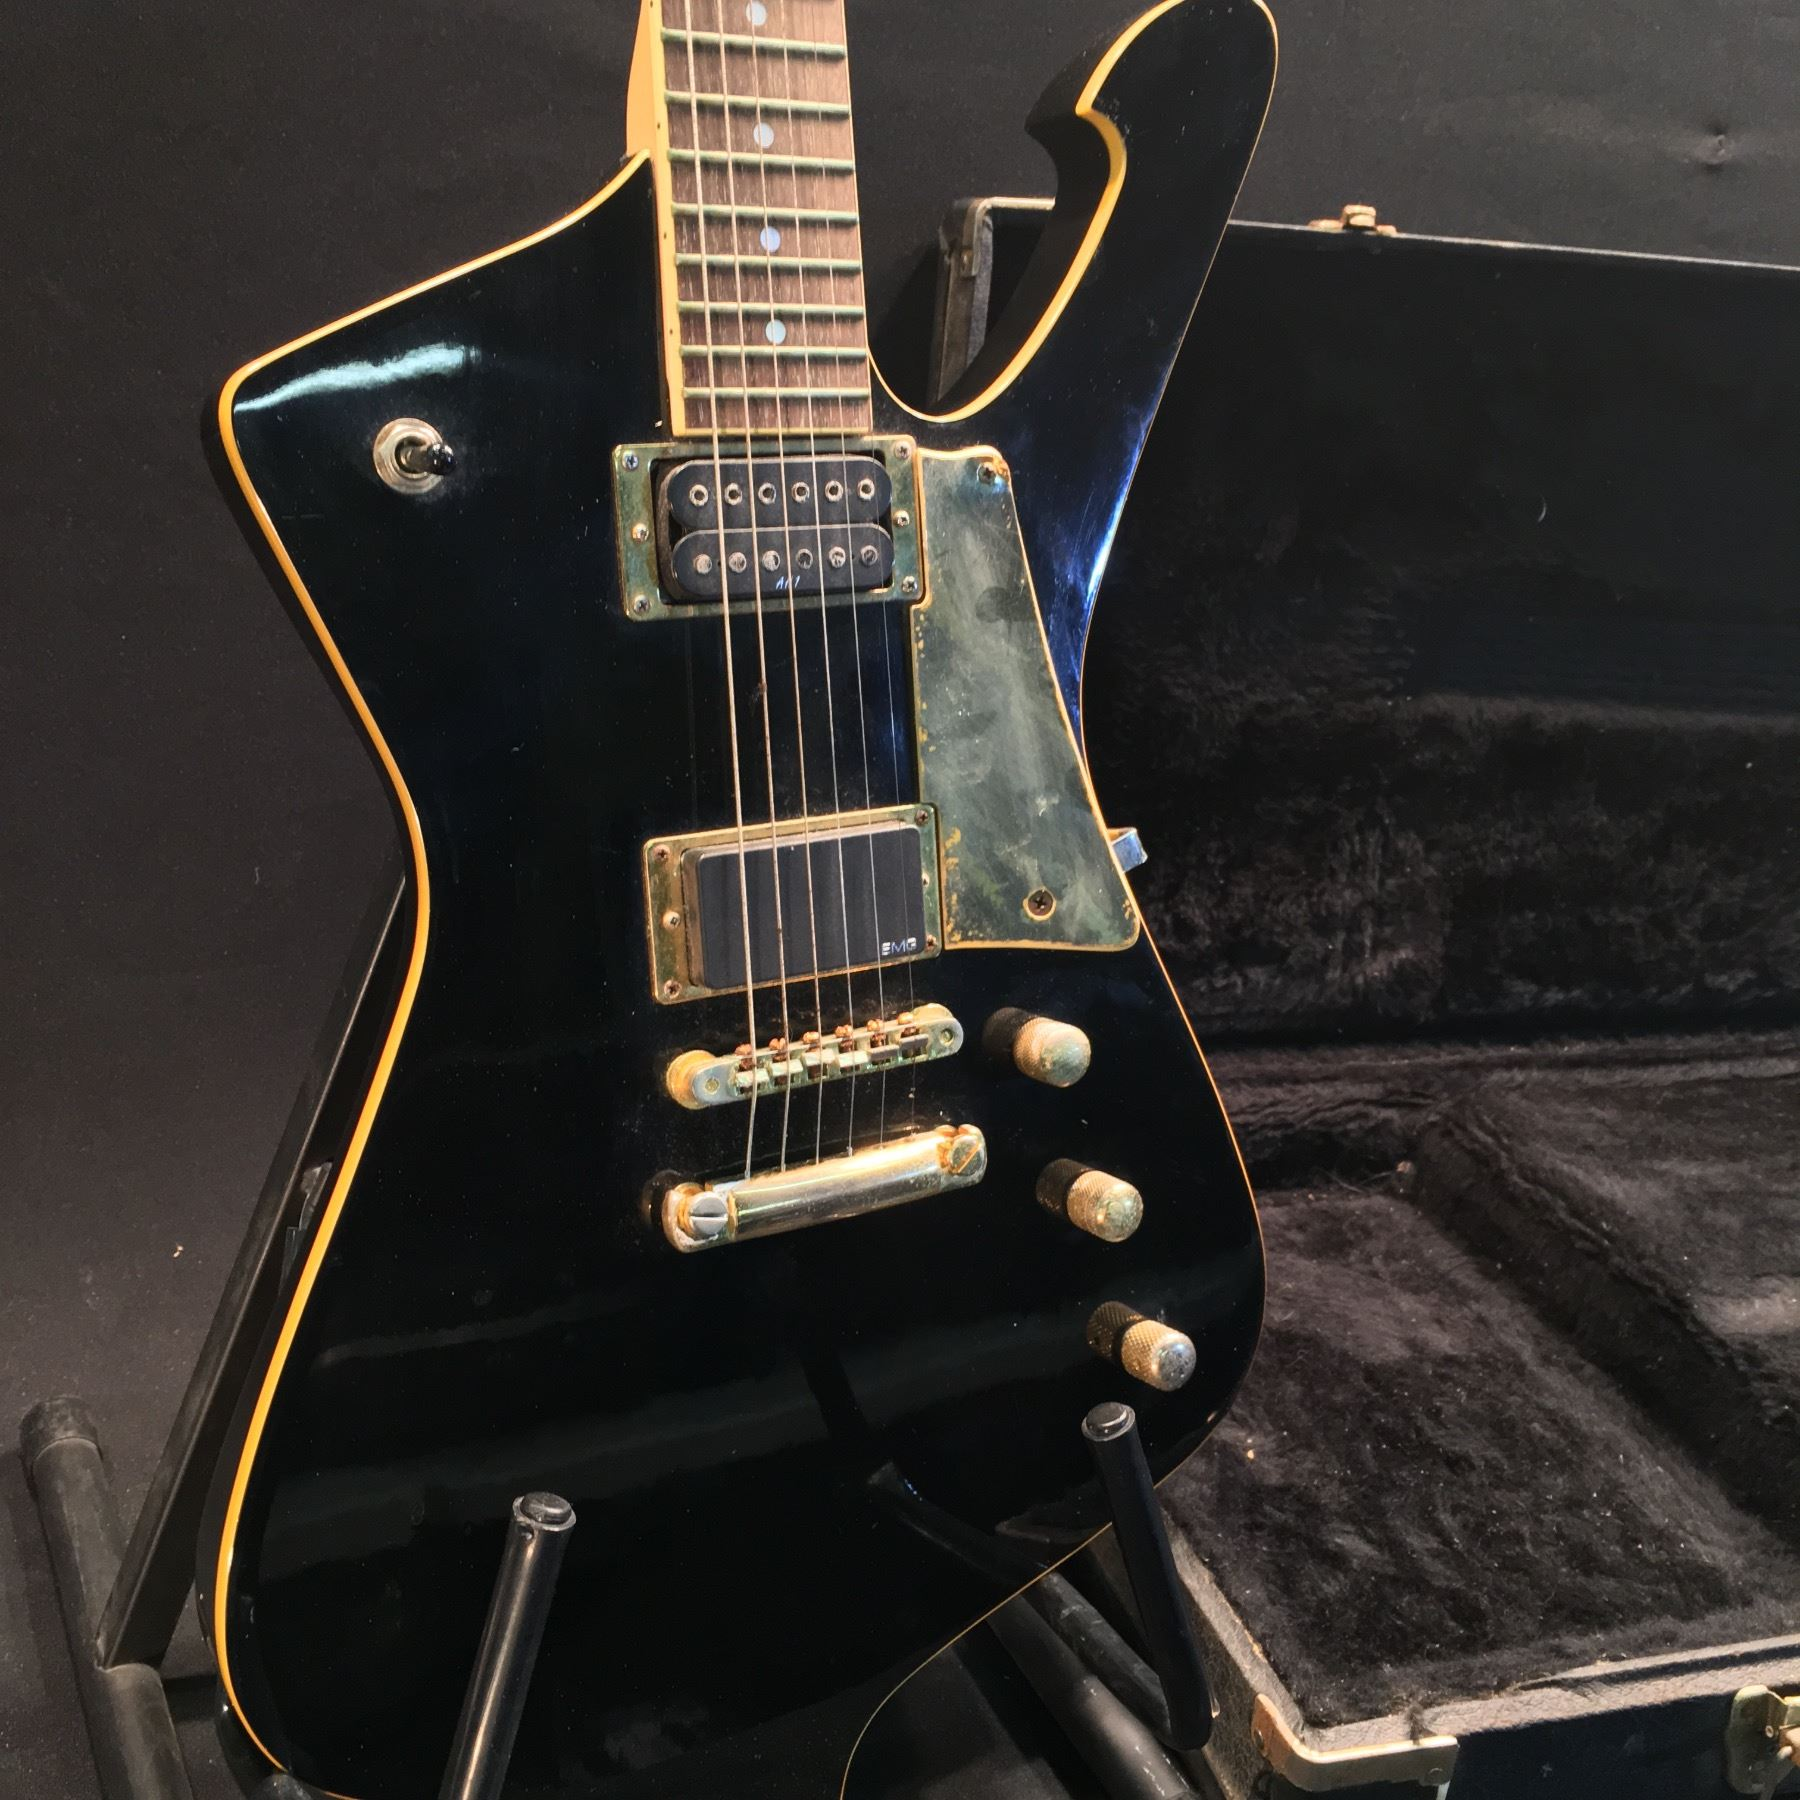 Delighted Boiler Diagram Huge Dimarzio Pickup Wiring Color Code Clean Bulldog Alarm Systems Adding Electrical Circuit Youthful Wiring A Breaker Box Diagram PinkHow To Add A New Circuit IBANEZ ICEMAN IC300 ACTIVE ELECTRIC GUITAR, WITH EMG AND HUMBUCKER ..